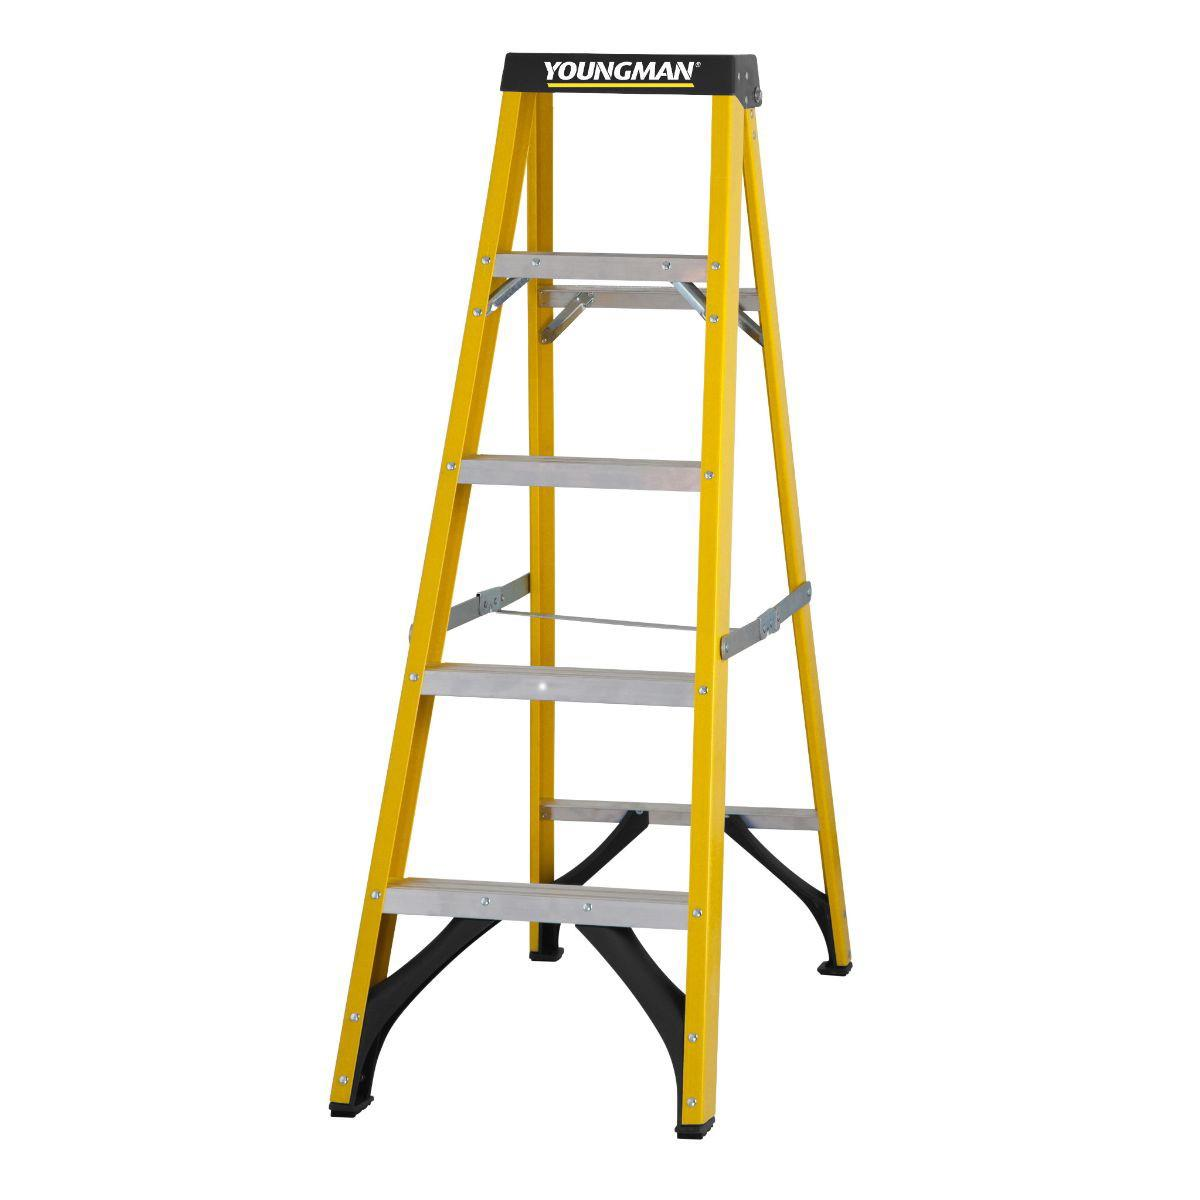 Youngman 52745518 S400 Glass Fibre Builders Step Ladder; EN131 2018; 5 Tread; Safe Working Height 2317mm